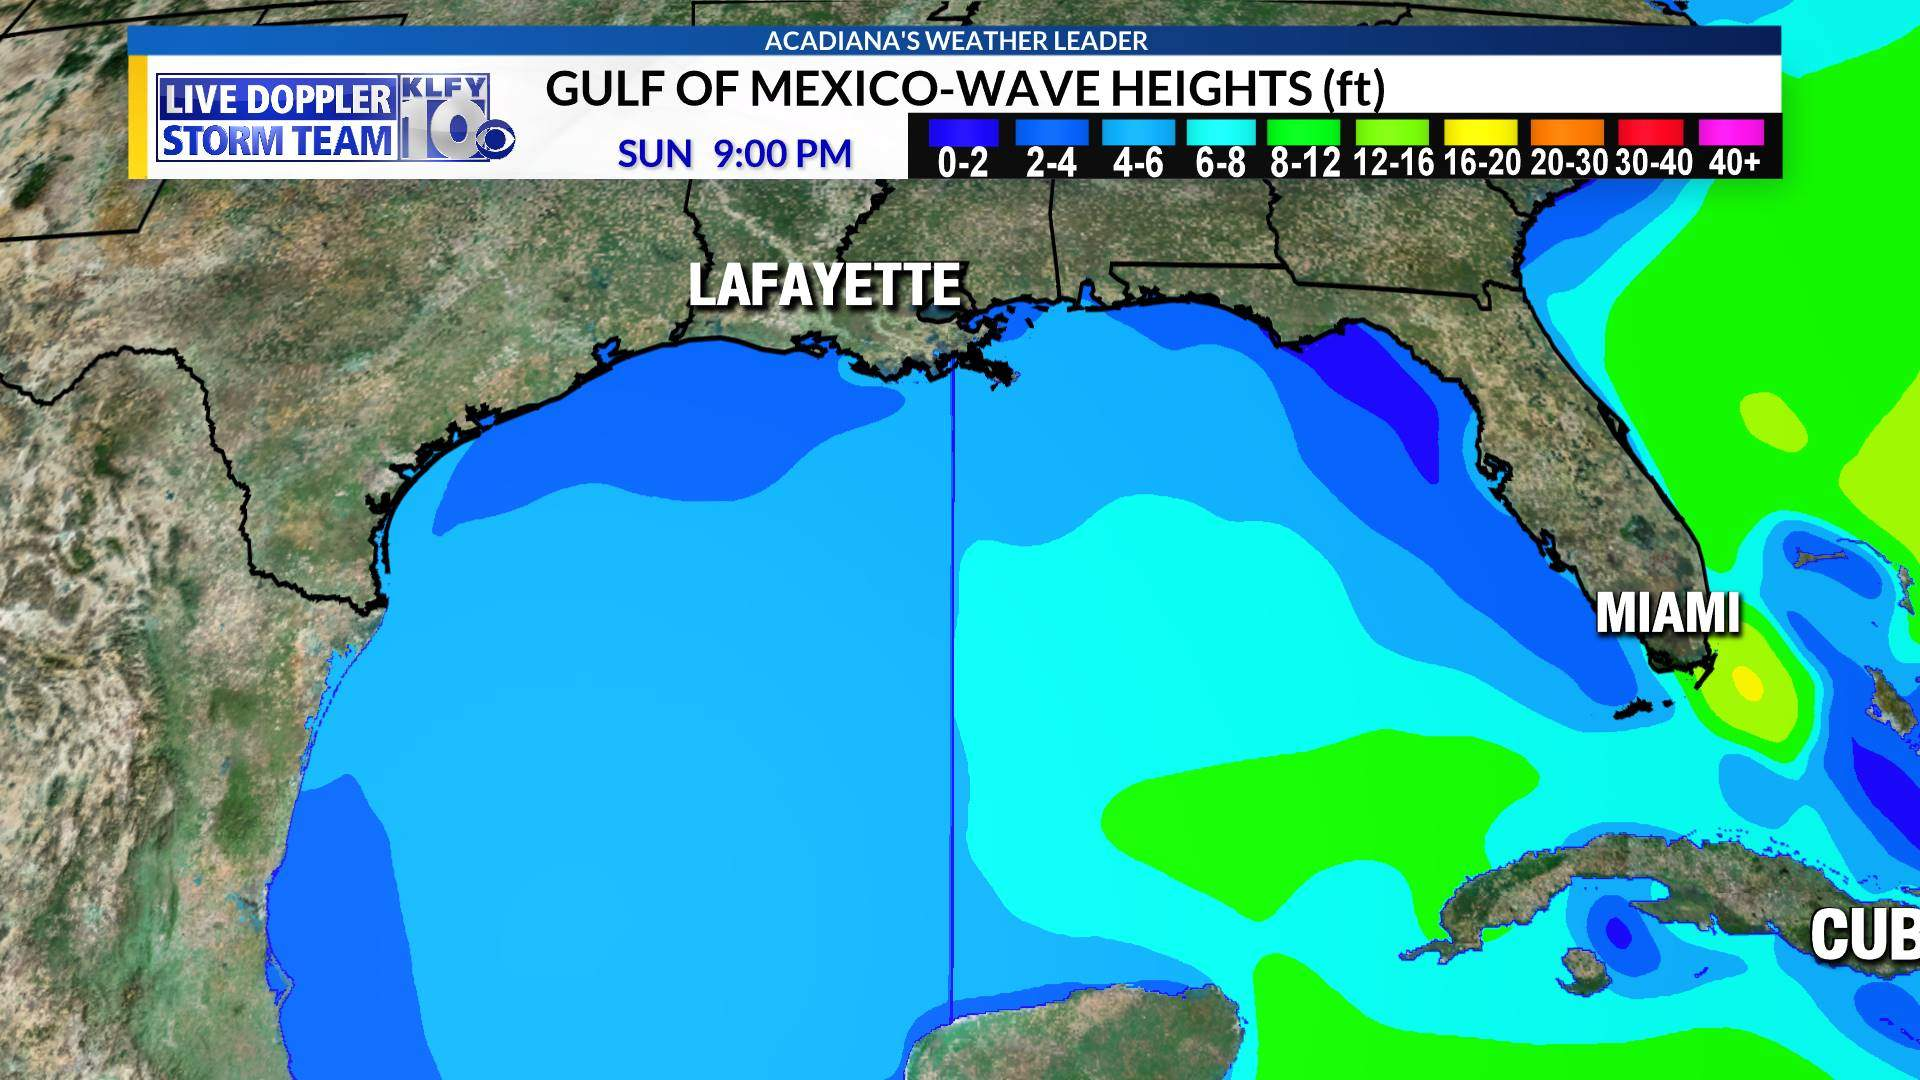 Gulf of Mexico Wave Heights